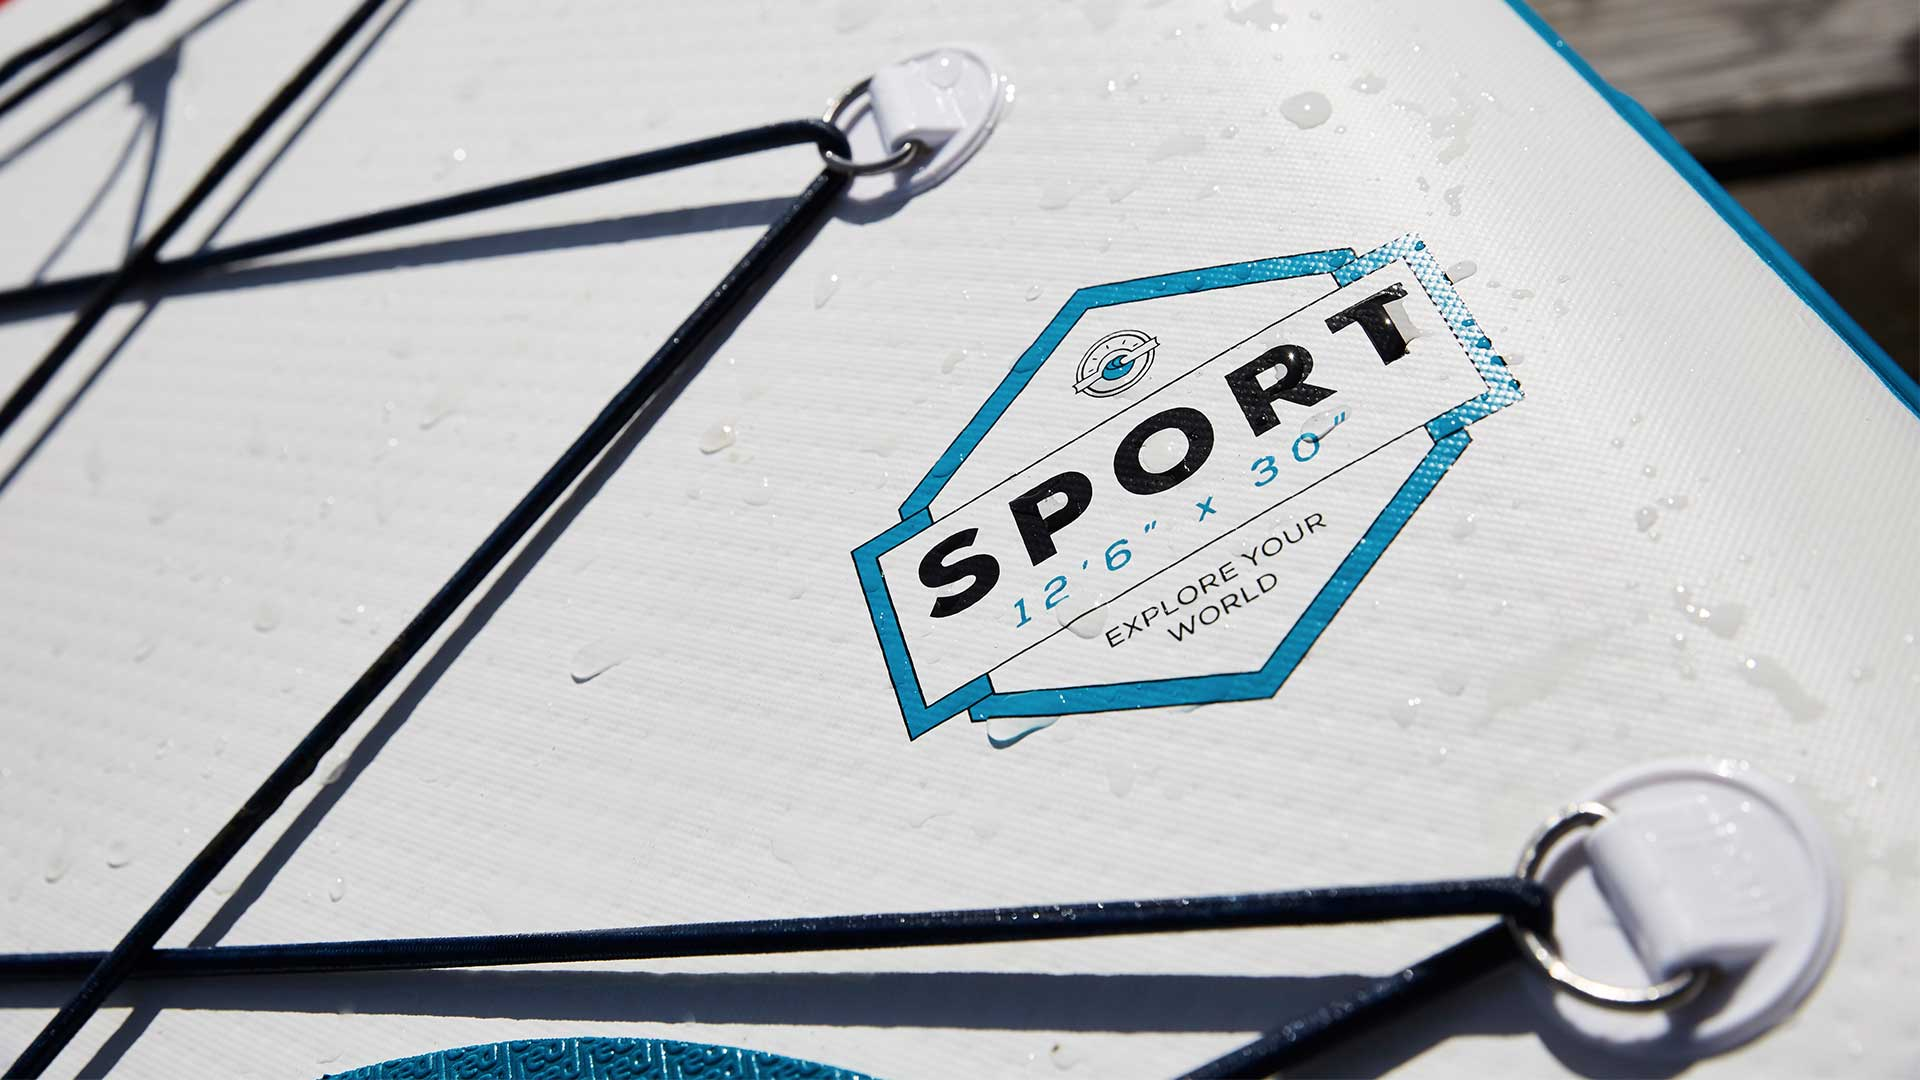 redpaddleco-126-sport-inflatable-paddle-board-desktop-gallery-cargo